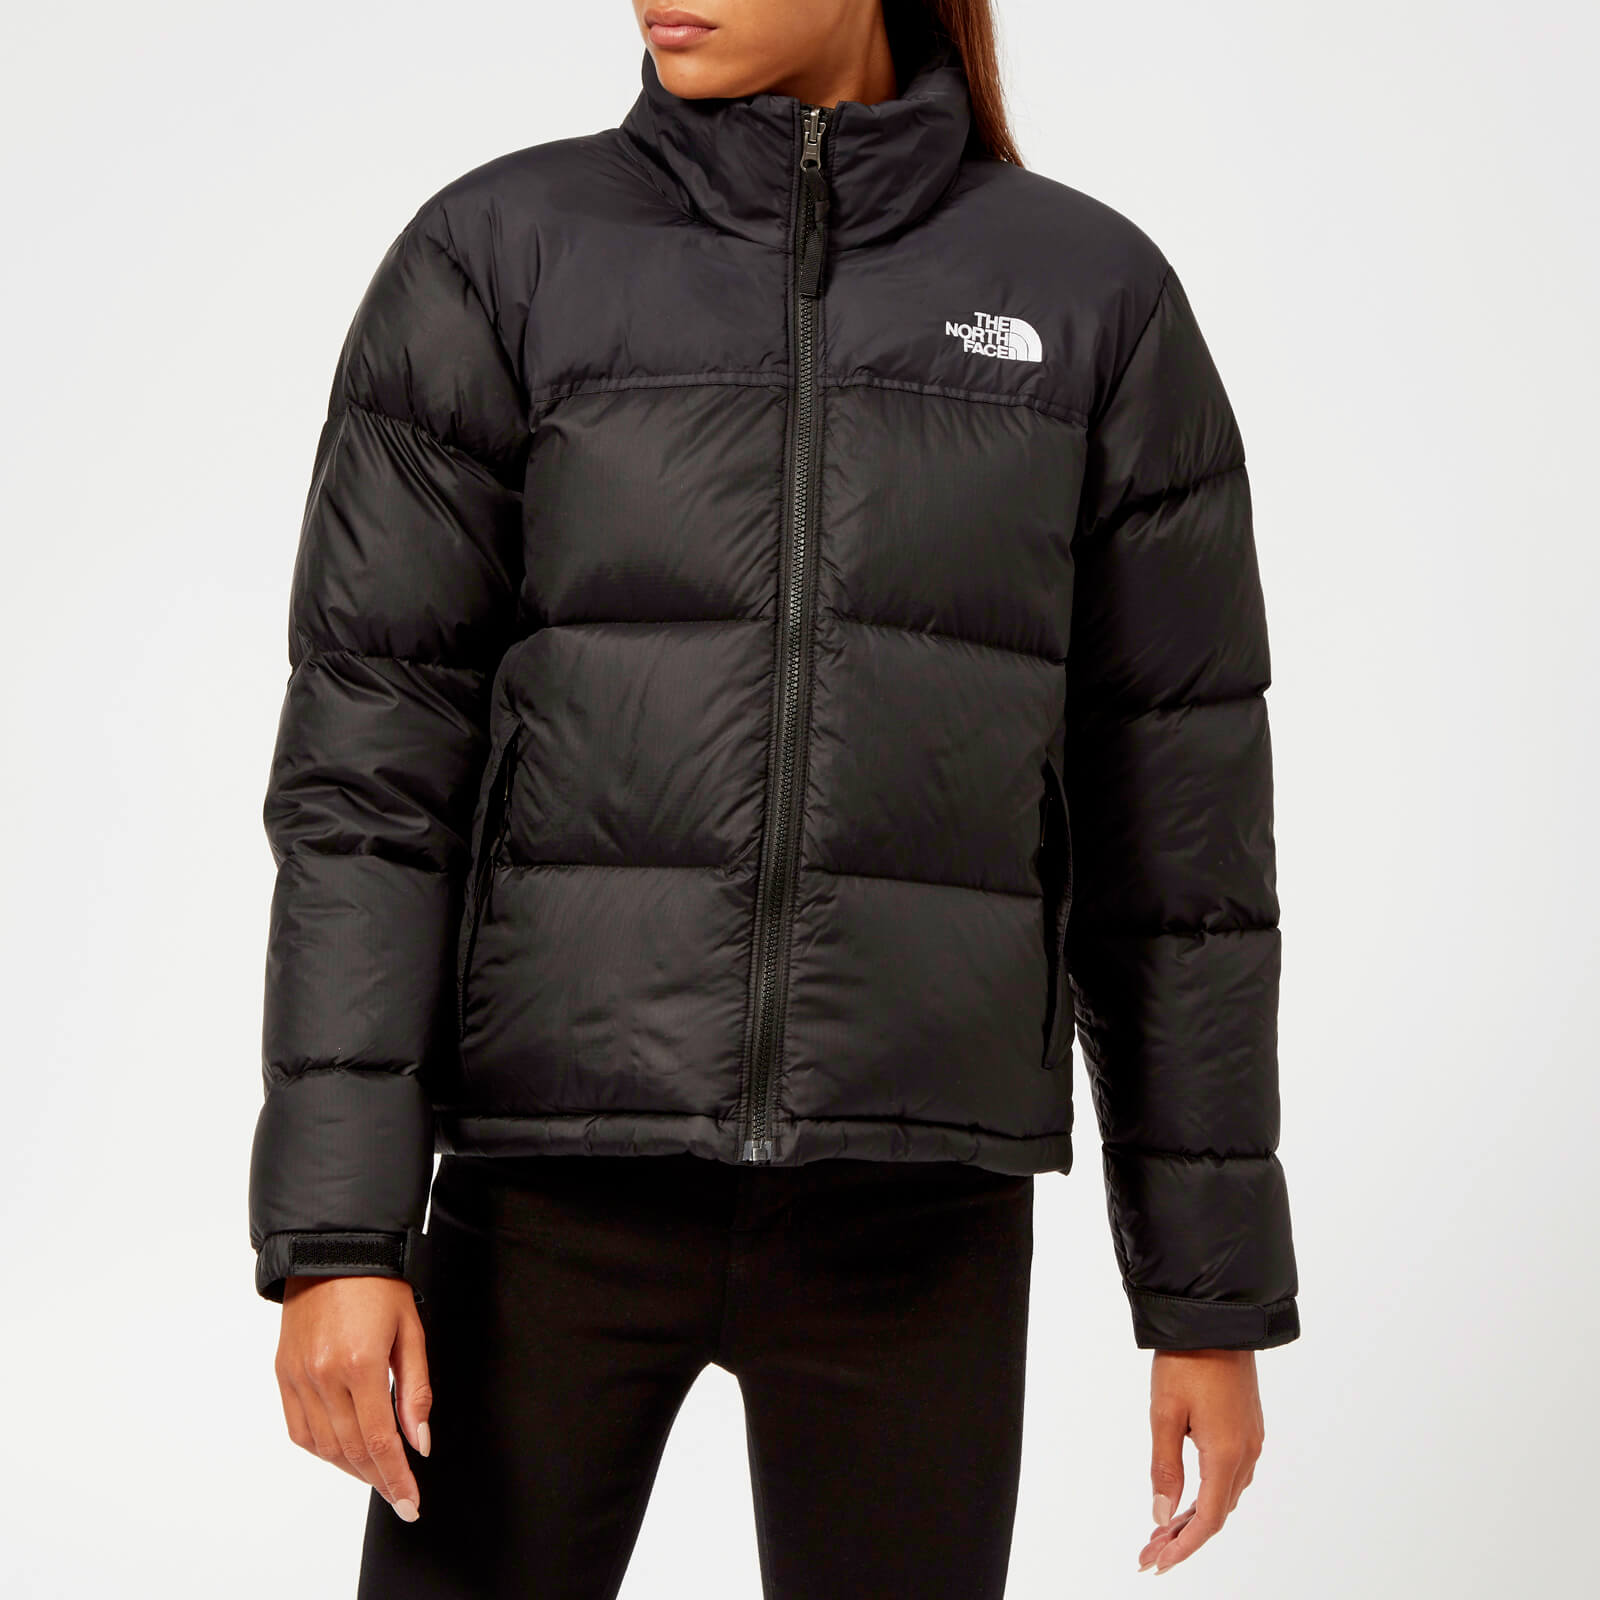 d75e52cd3 The North Face Women's 1996 Retro Nuptse Jacket - TNF Black